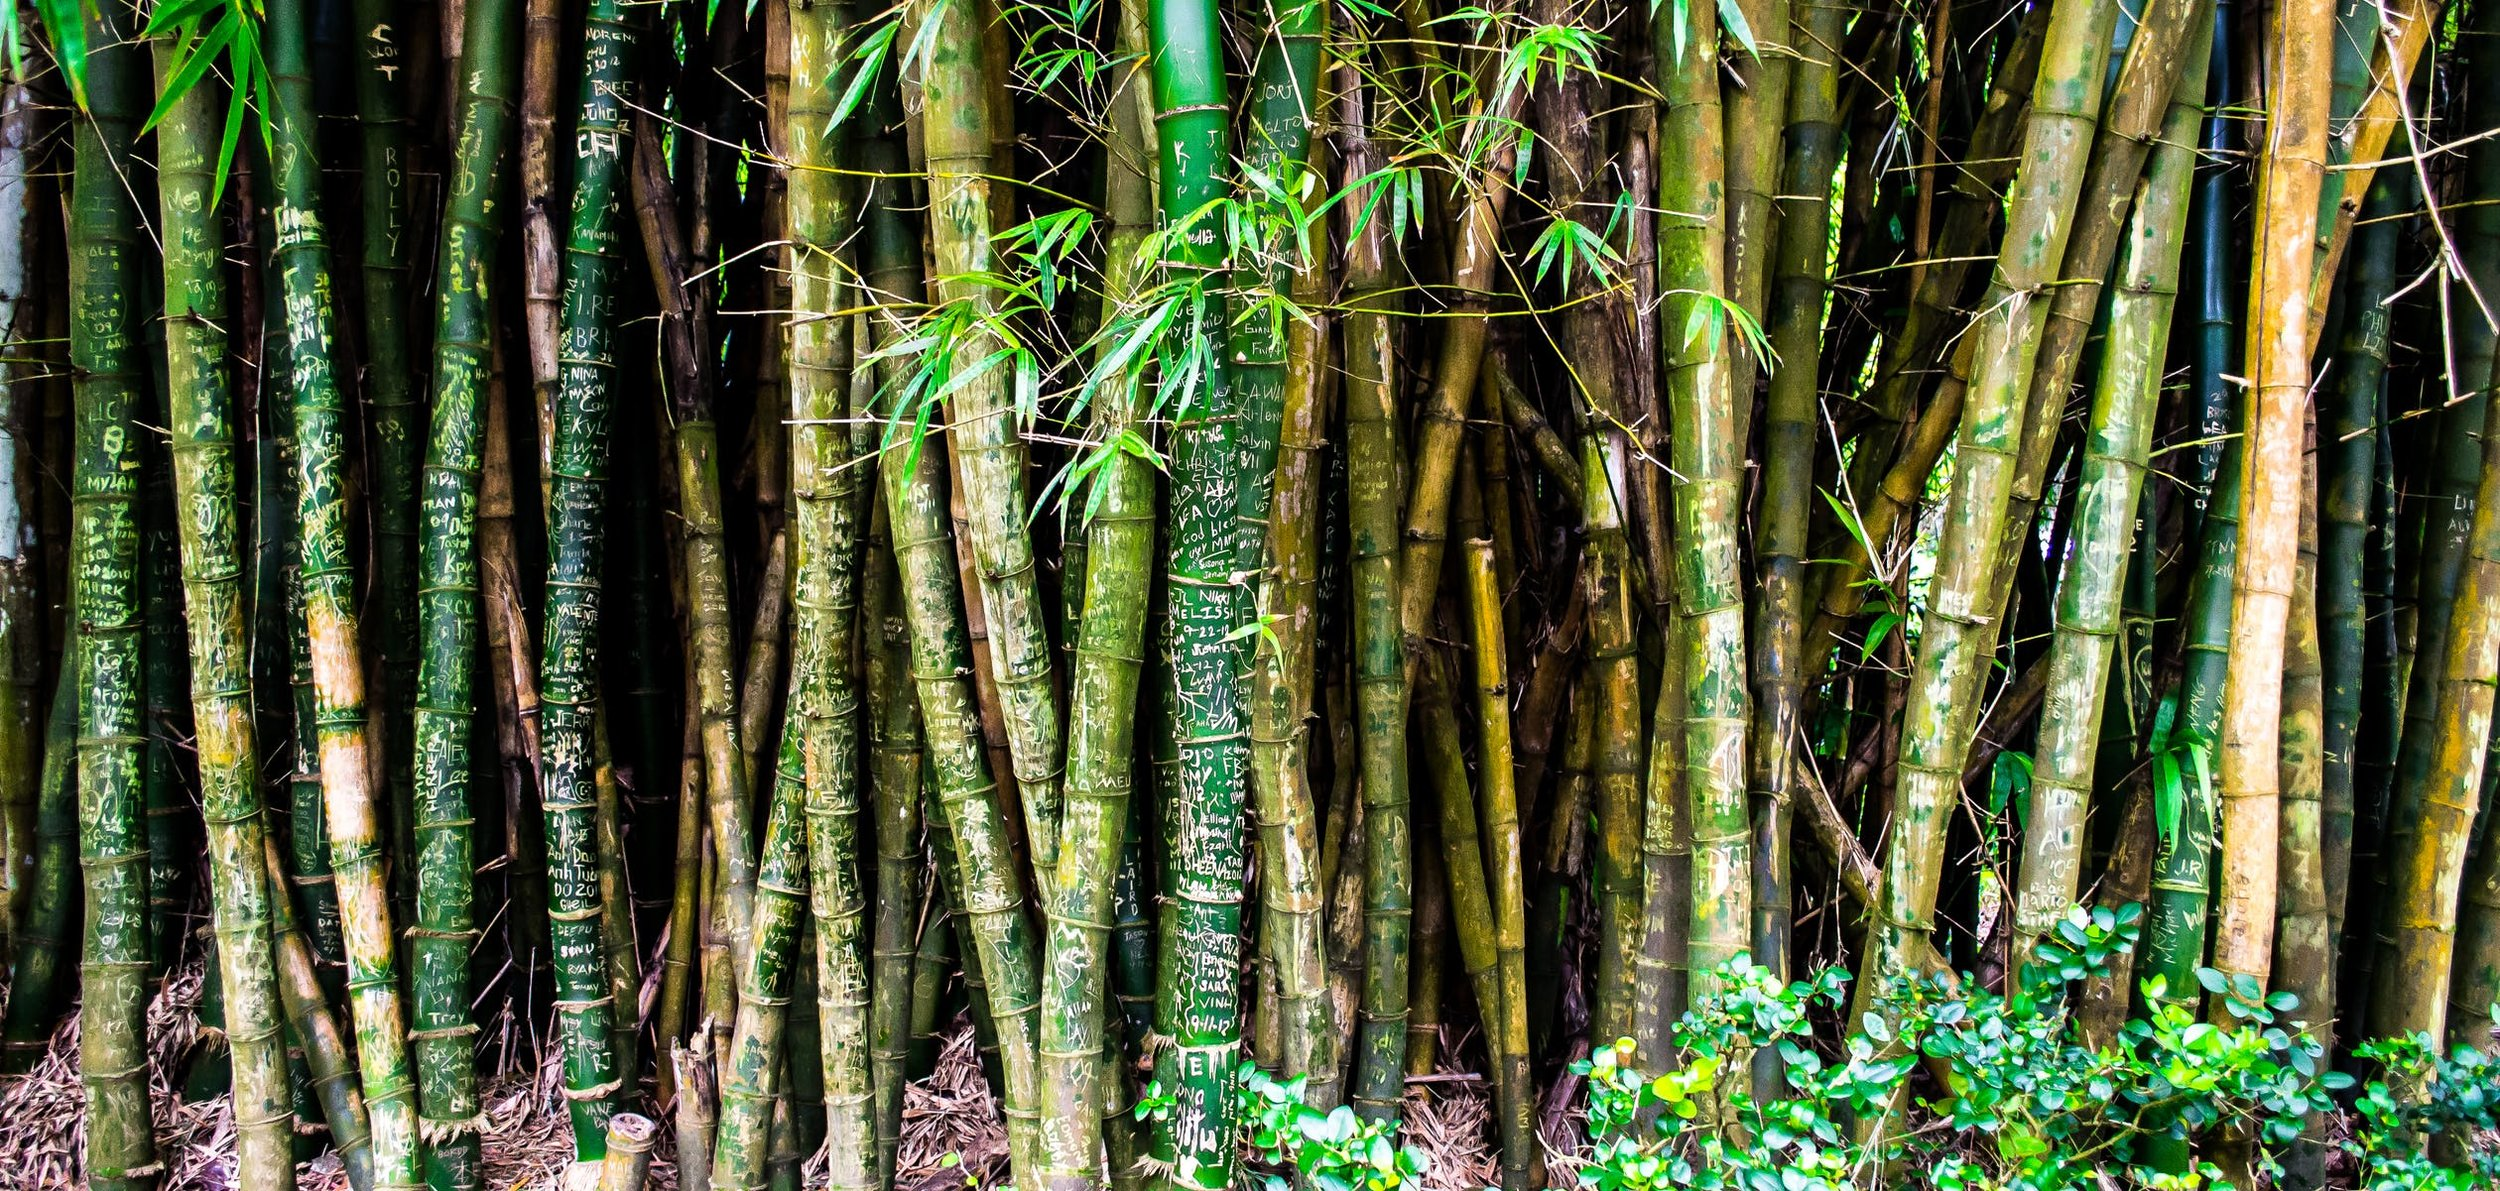 bamboo hawaii.jpeg